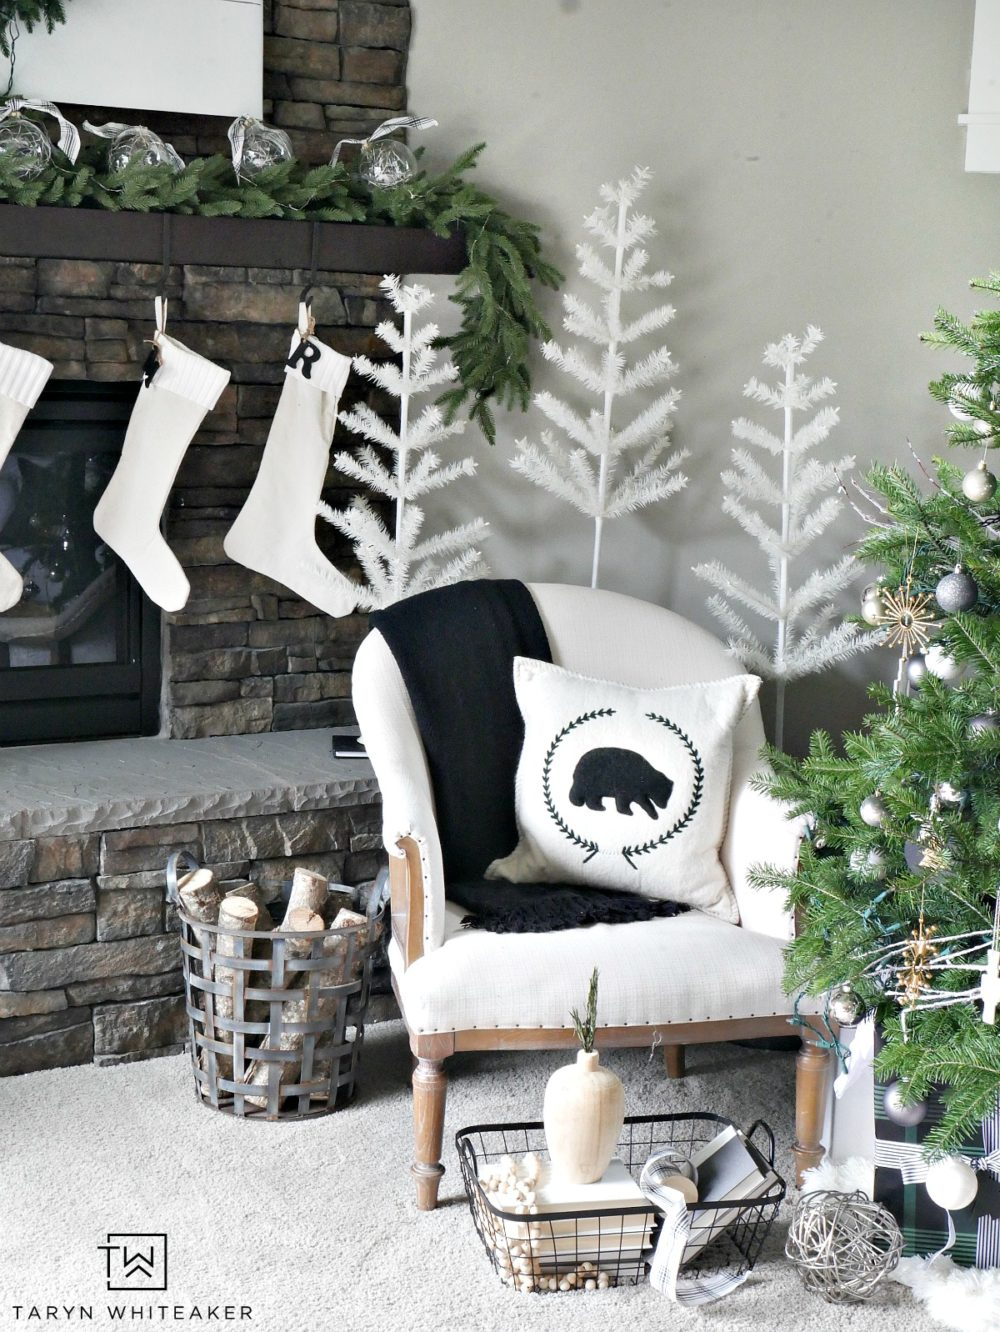 Create a winter wonderland forest in your home with these modern and simplistic trees! Recreate this Neutral Christmas Mantel using lush greenery, winter white and pops of black and plaid. This look is fresh, clean and festive.